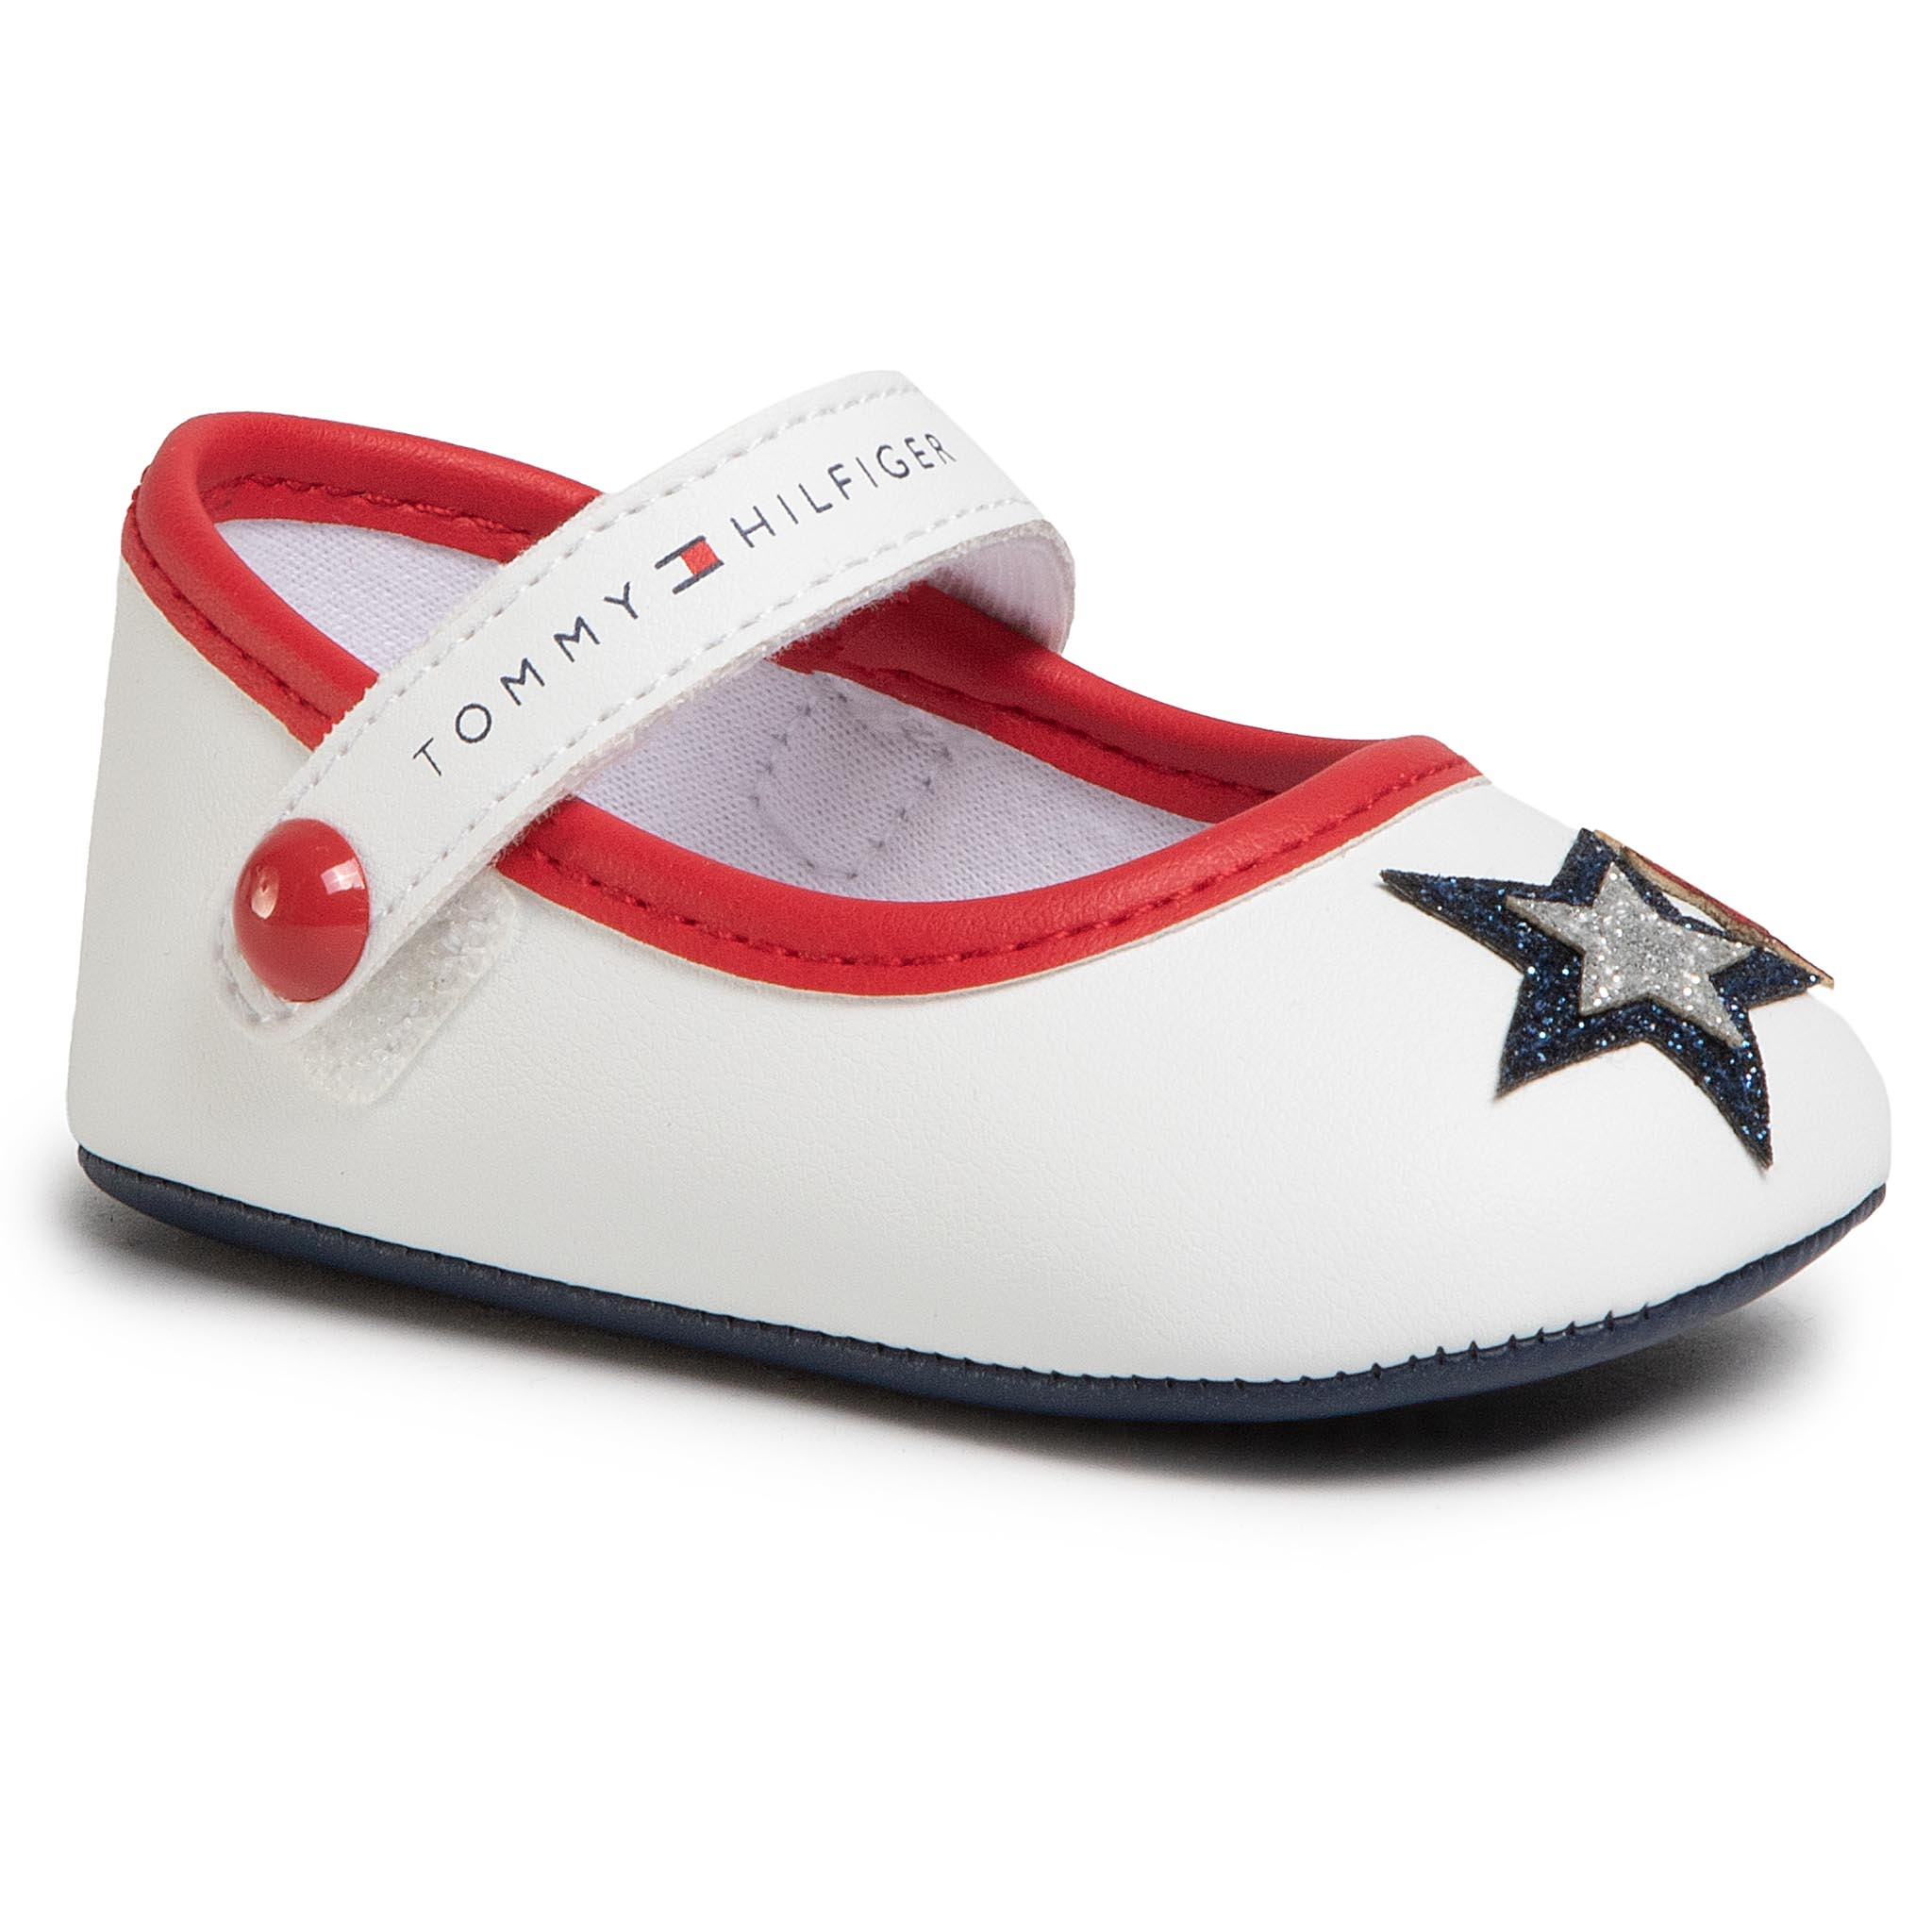 Chaussures basses TOMMY HILFIGER - Ballerina T0A3-30591-0886 White/Blue/Red Y003